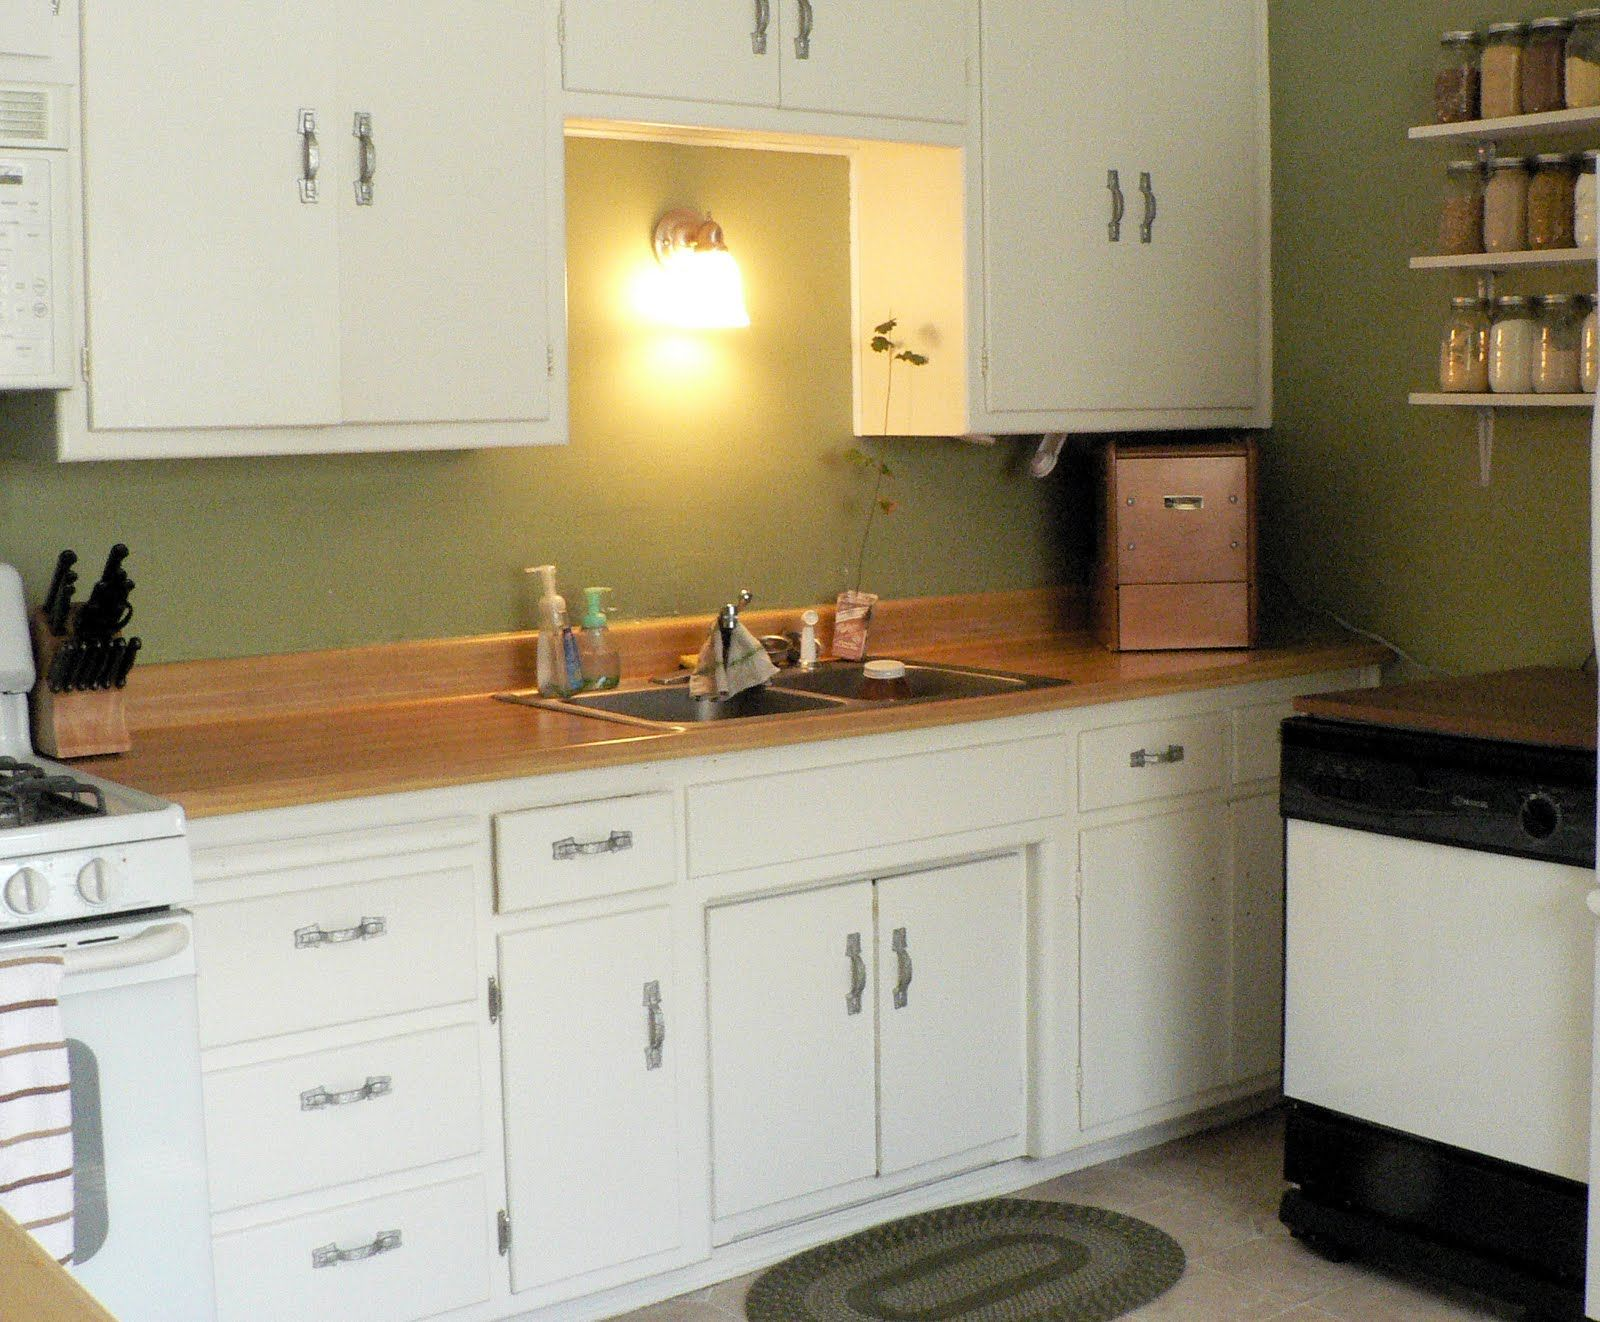 Perfect Sage Green For An Older Kitchen....not The White